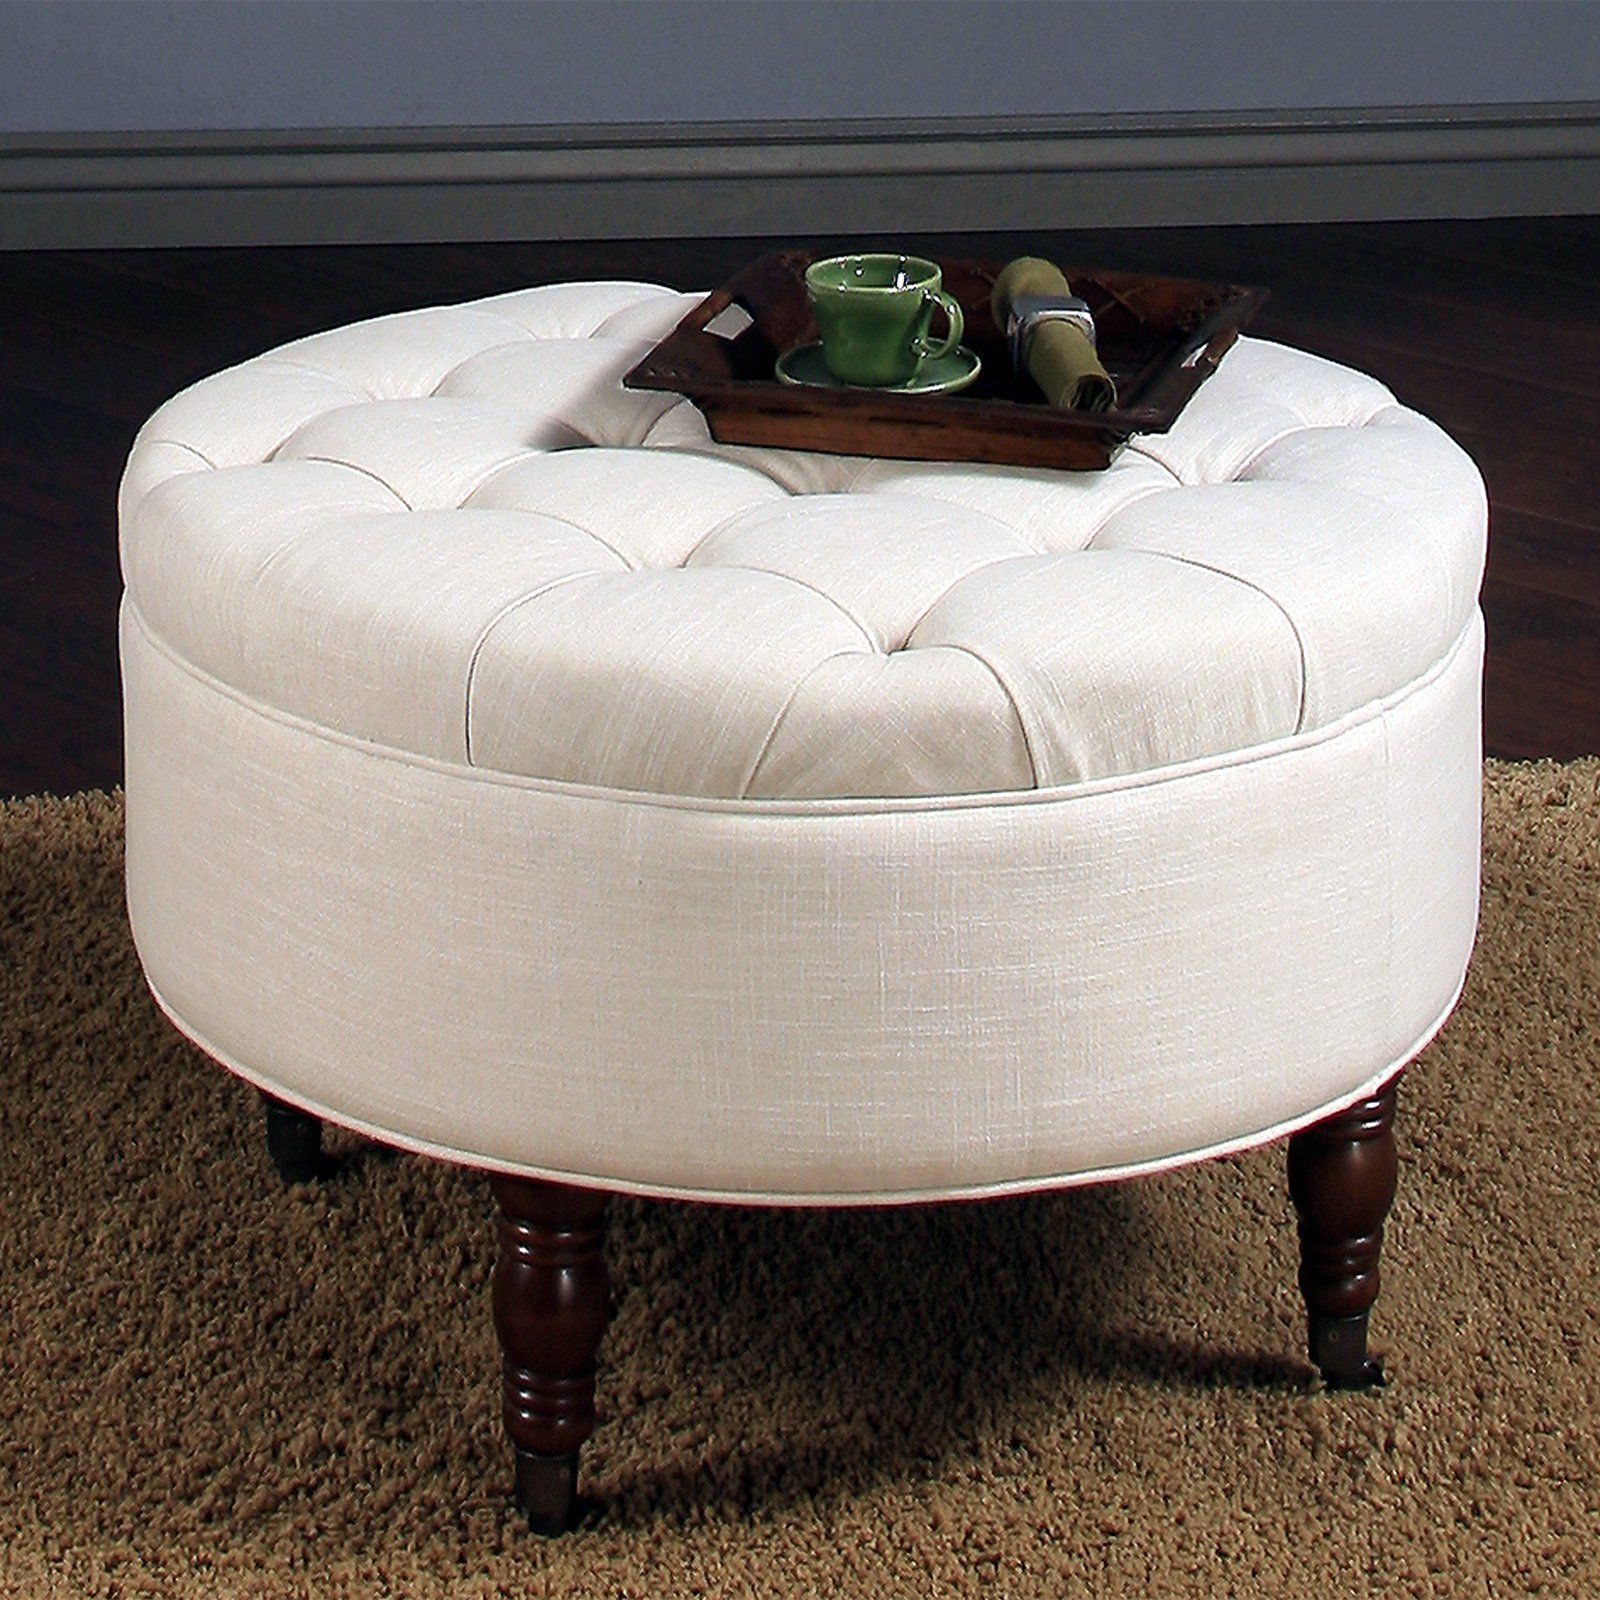 Cool Abbyson Avernce Round Tufted Ottoman White Furniture Gmtry Best Dining Table And Chair Ideas Images Gmtryco